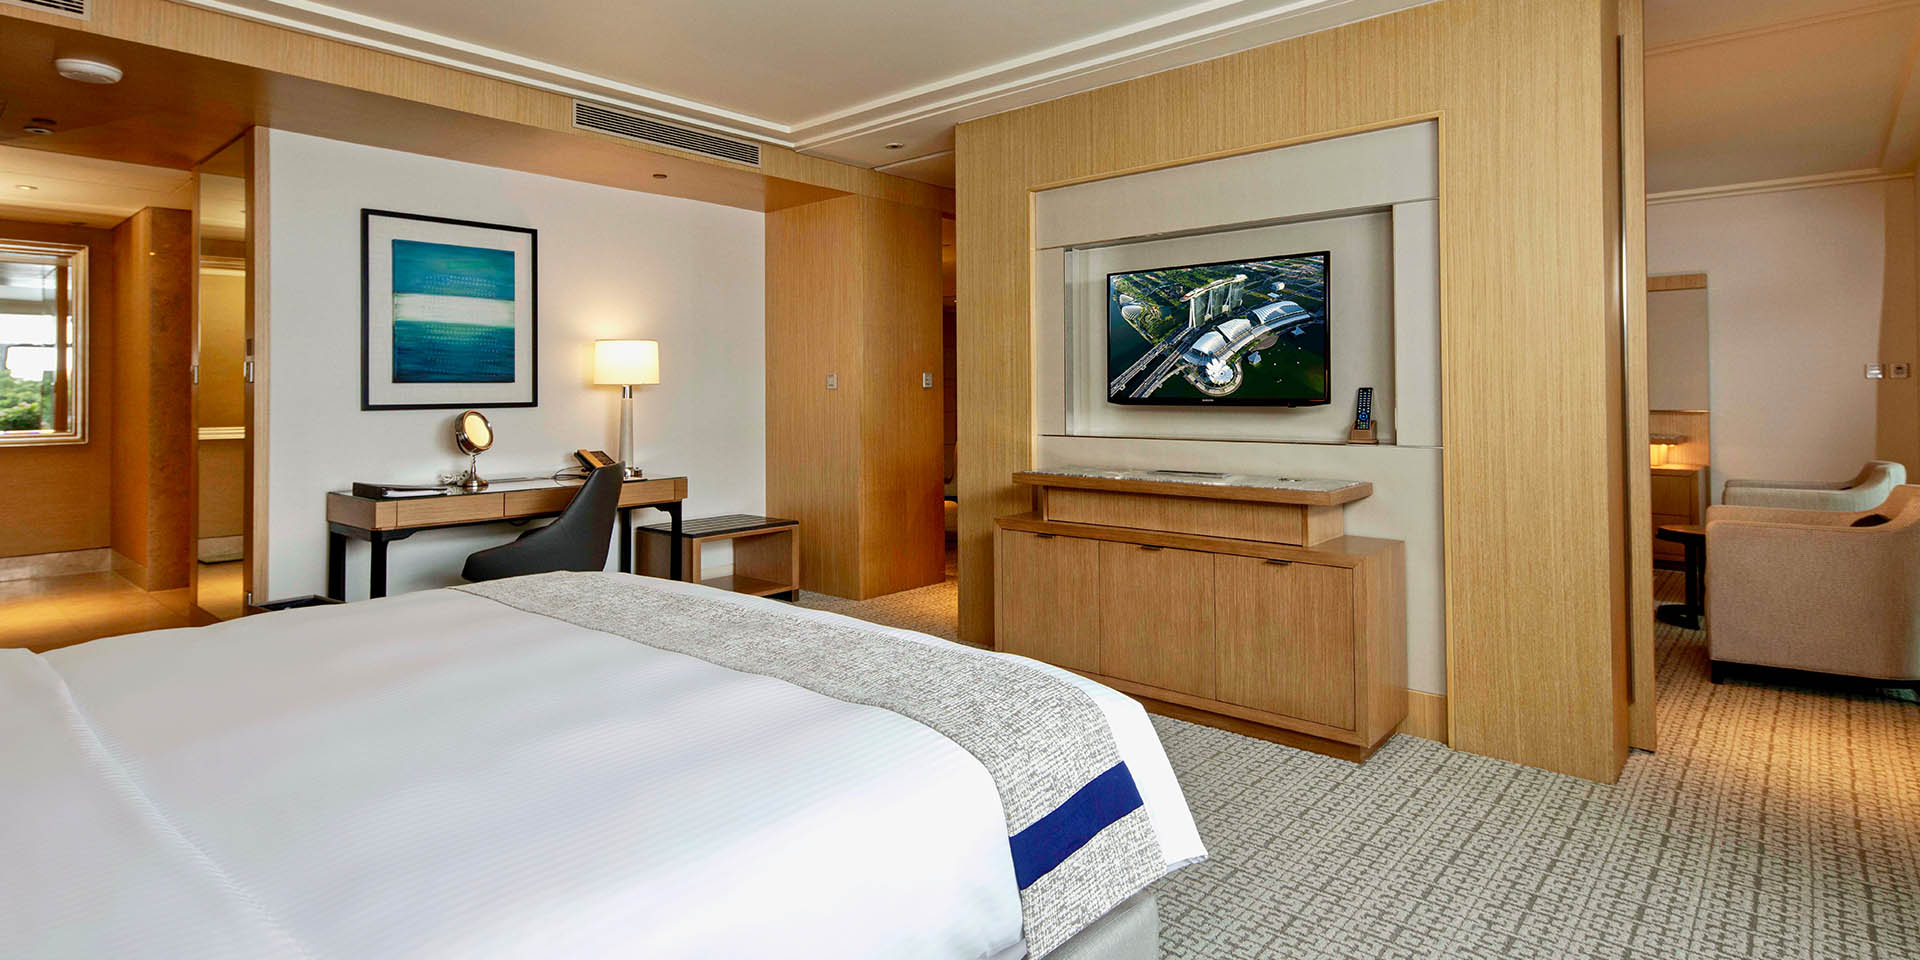 Family room in marina bay sands singapore hotel - 2 bedroom hotel suites singapore ...